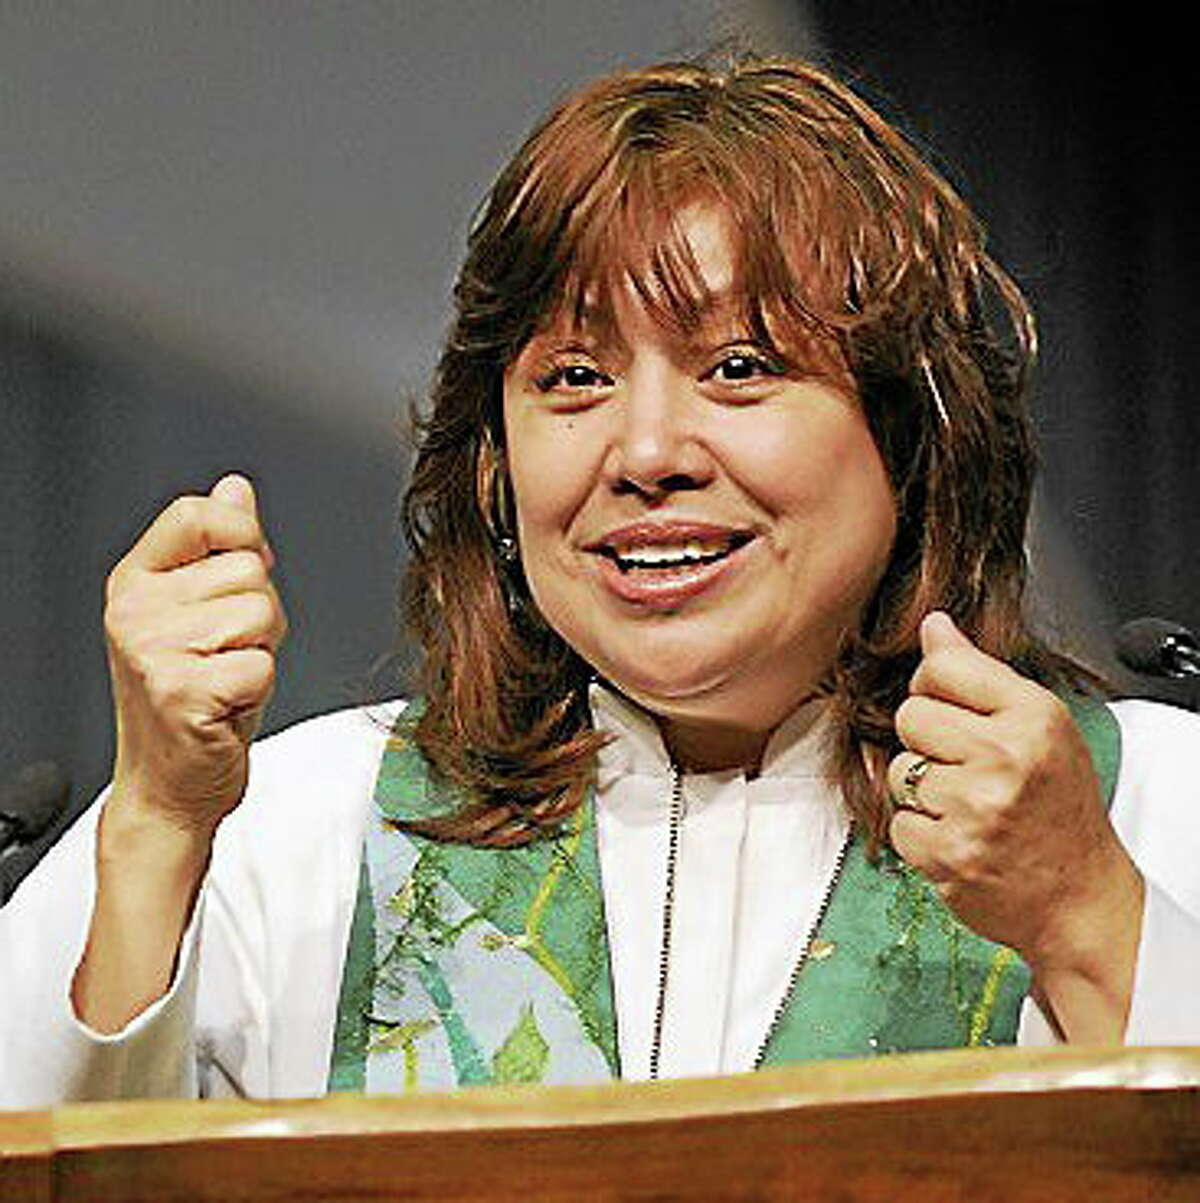 Minerva Garza Carcano is the first Hispanic woman to be elected to the episcopacy of The United Methodist Church.